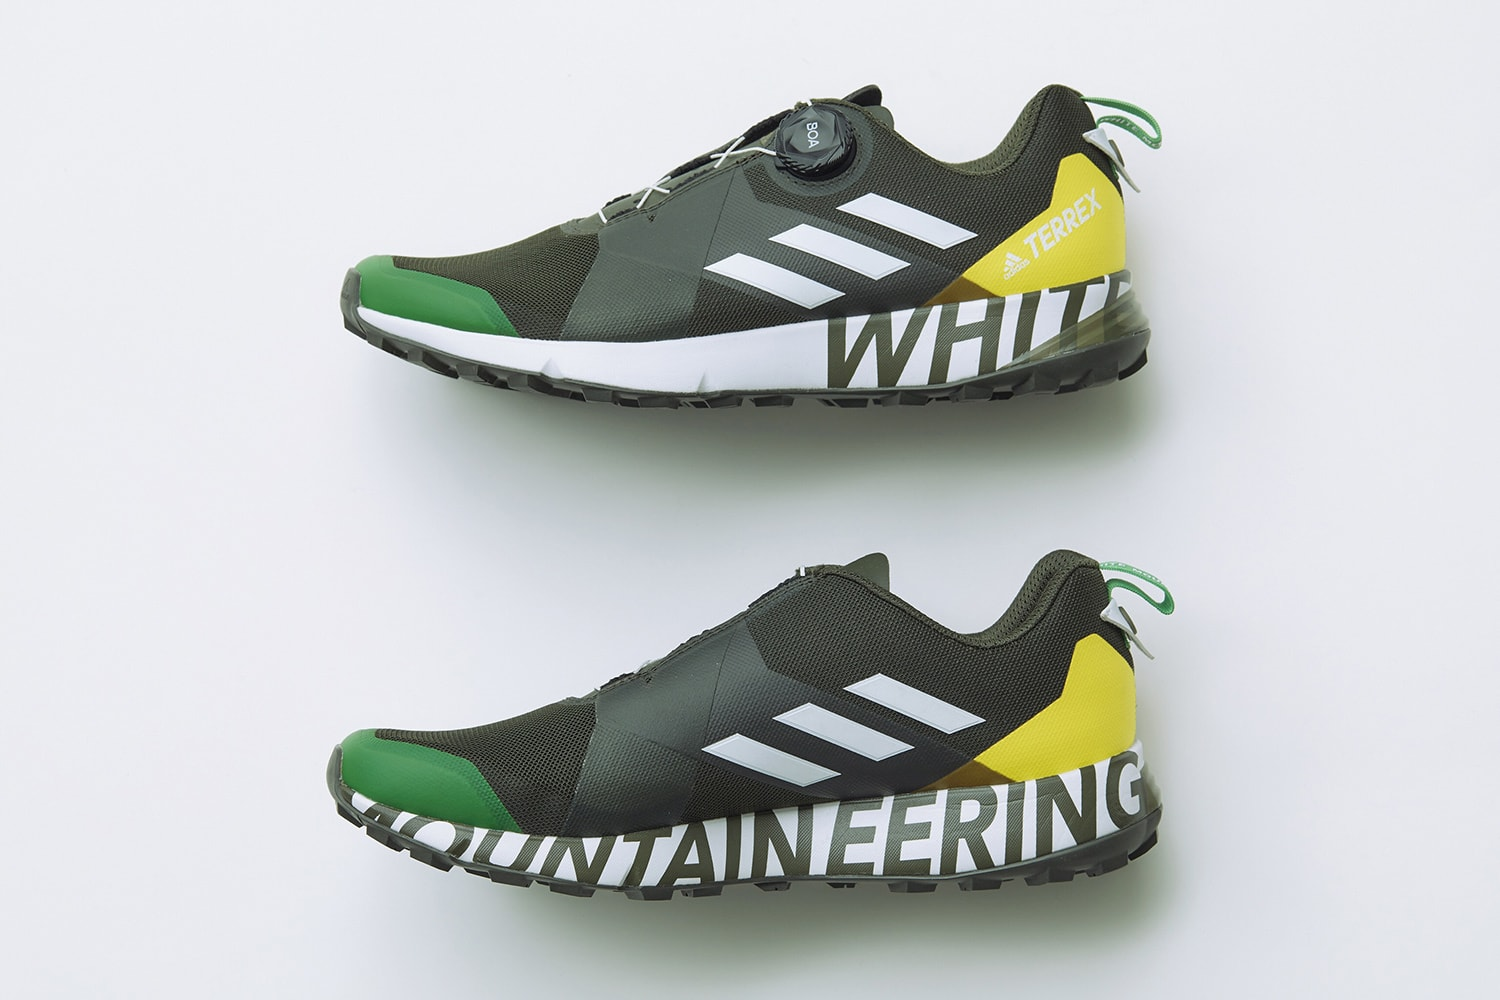 reputable site 94f45 af9f7 adidas Terrex White Mountaineering Olive Profile